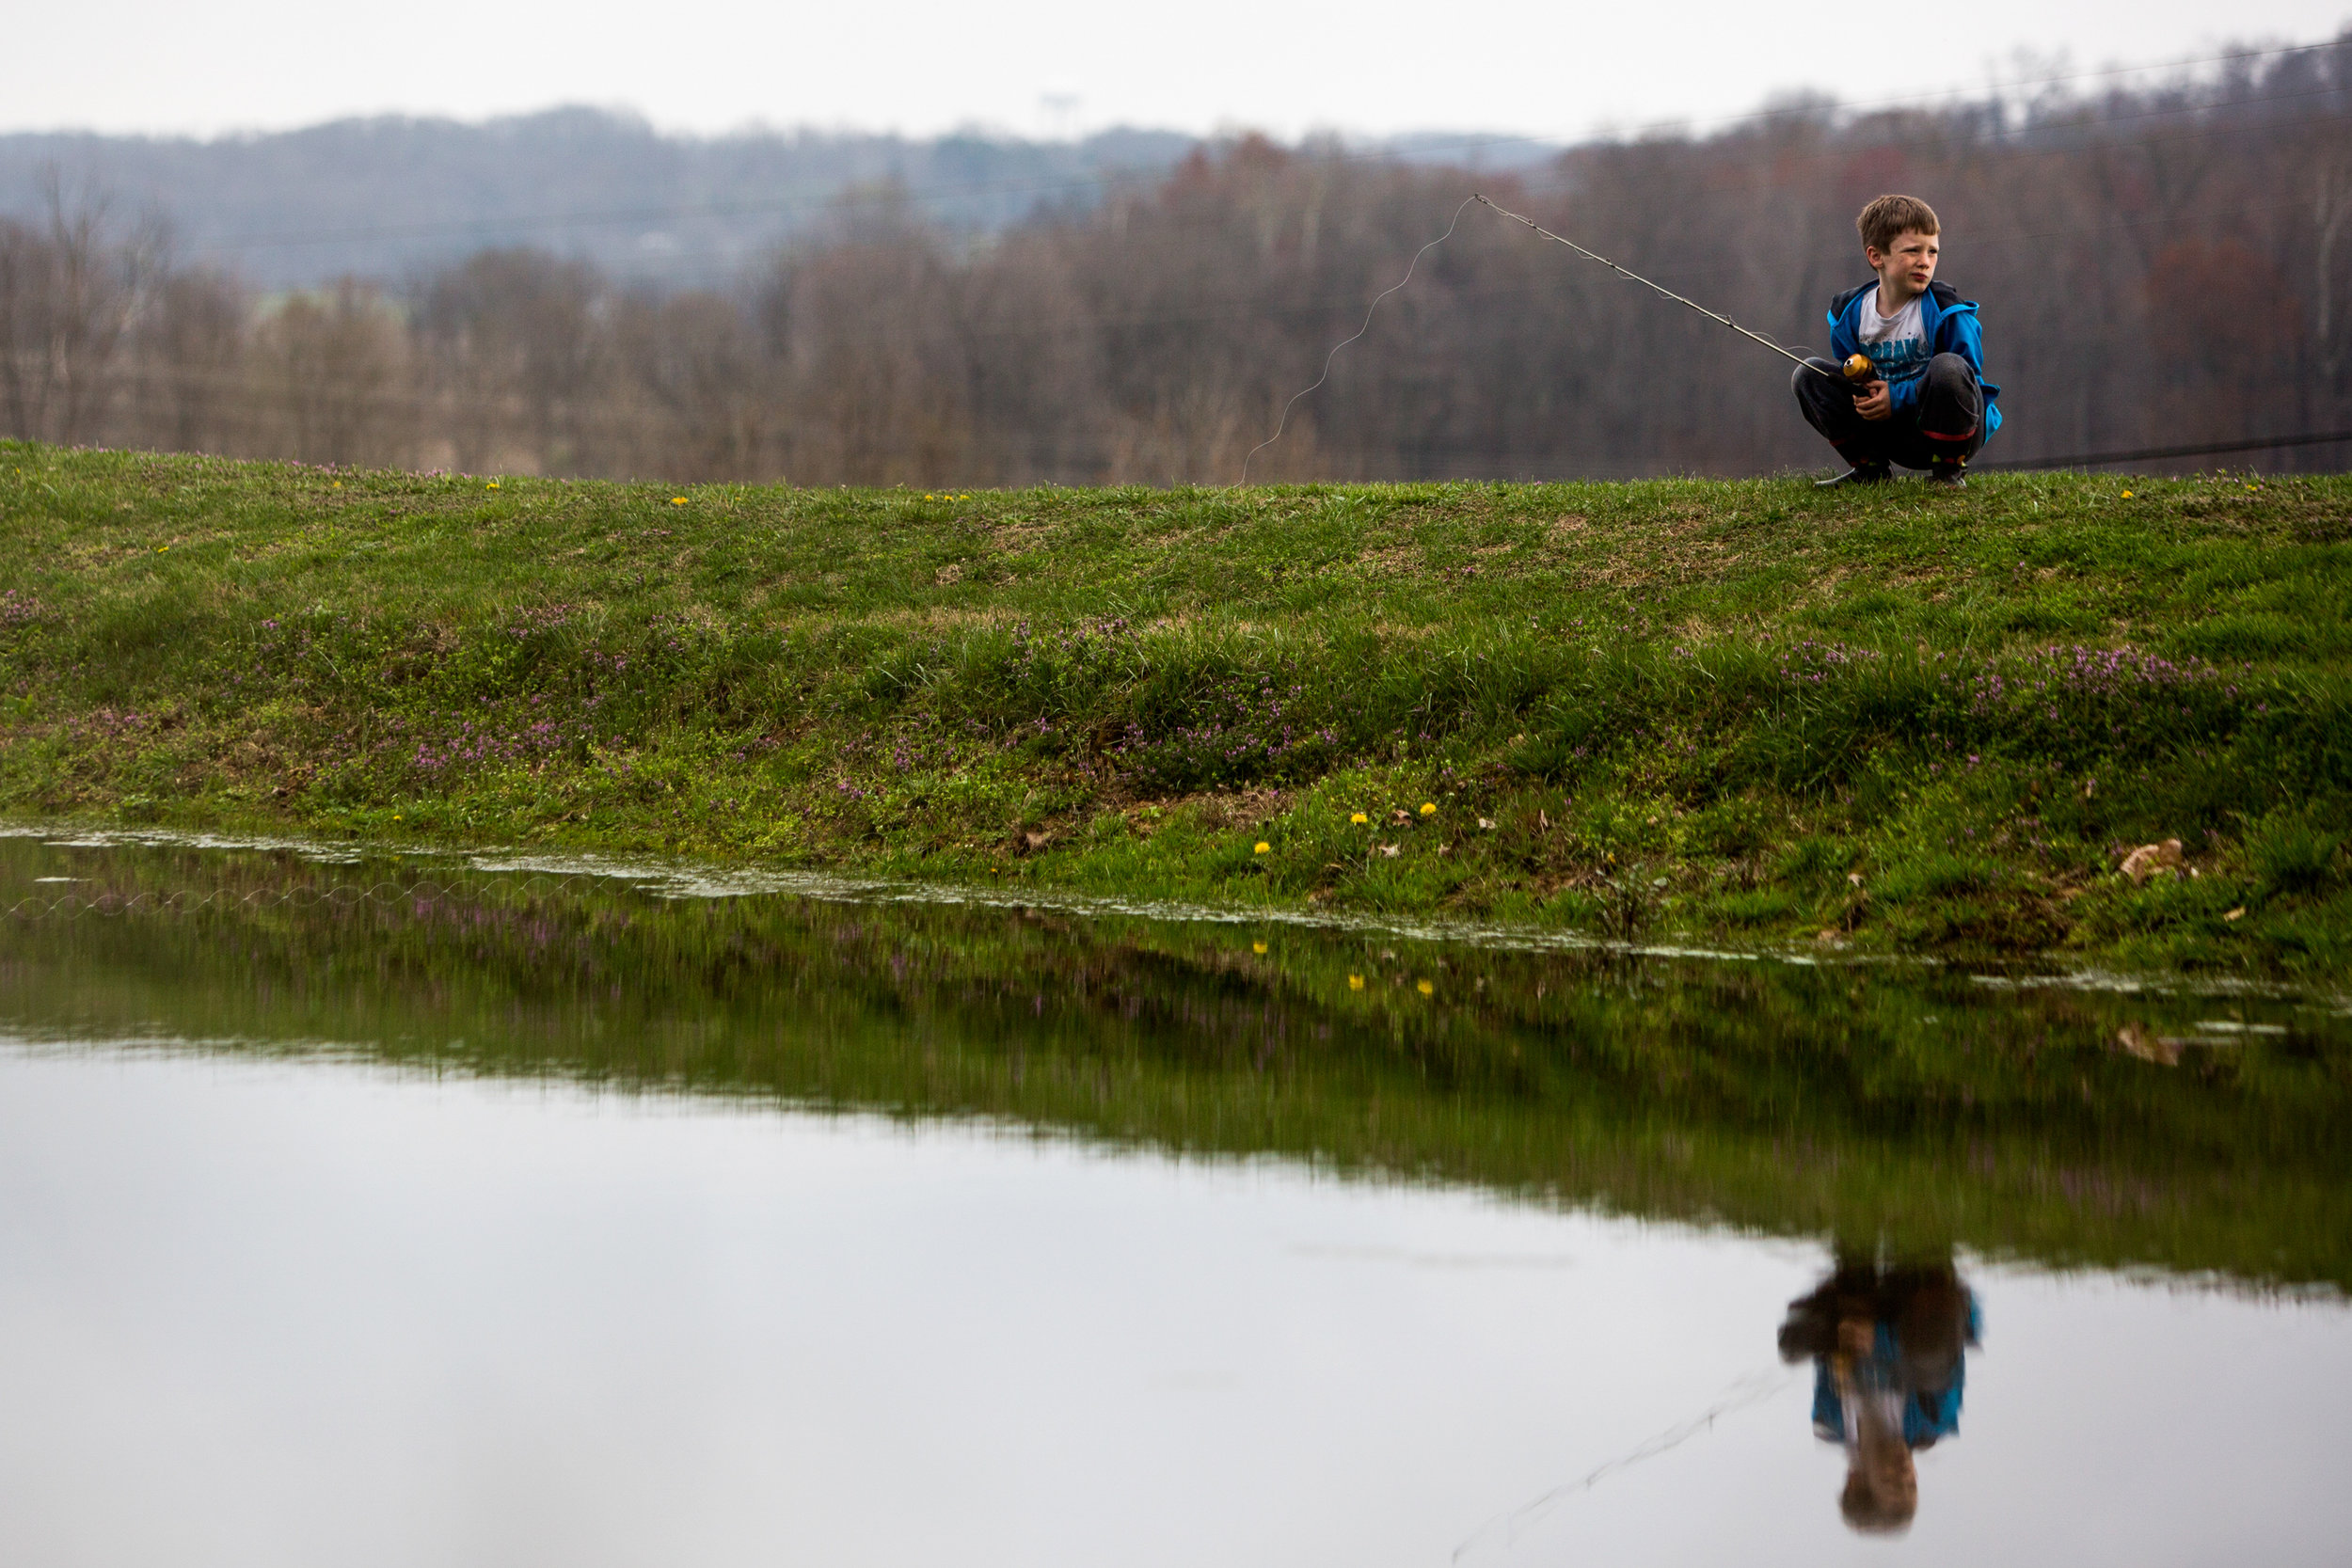 Marshall Schepers of Dubois, 8, waited for a bite while fishing at his grandmother's pond in Dubois on Tuesday during his spring break.